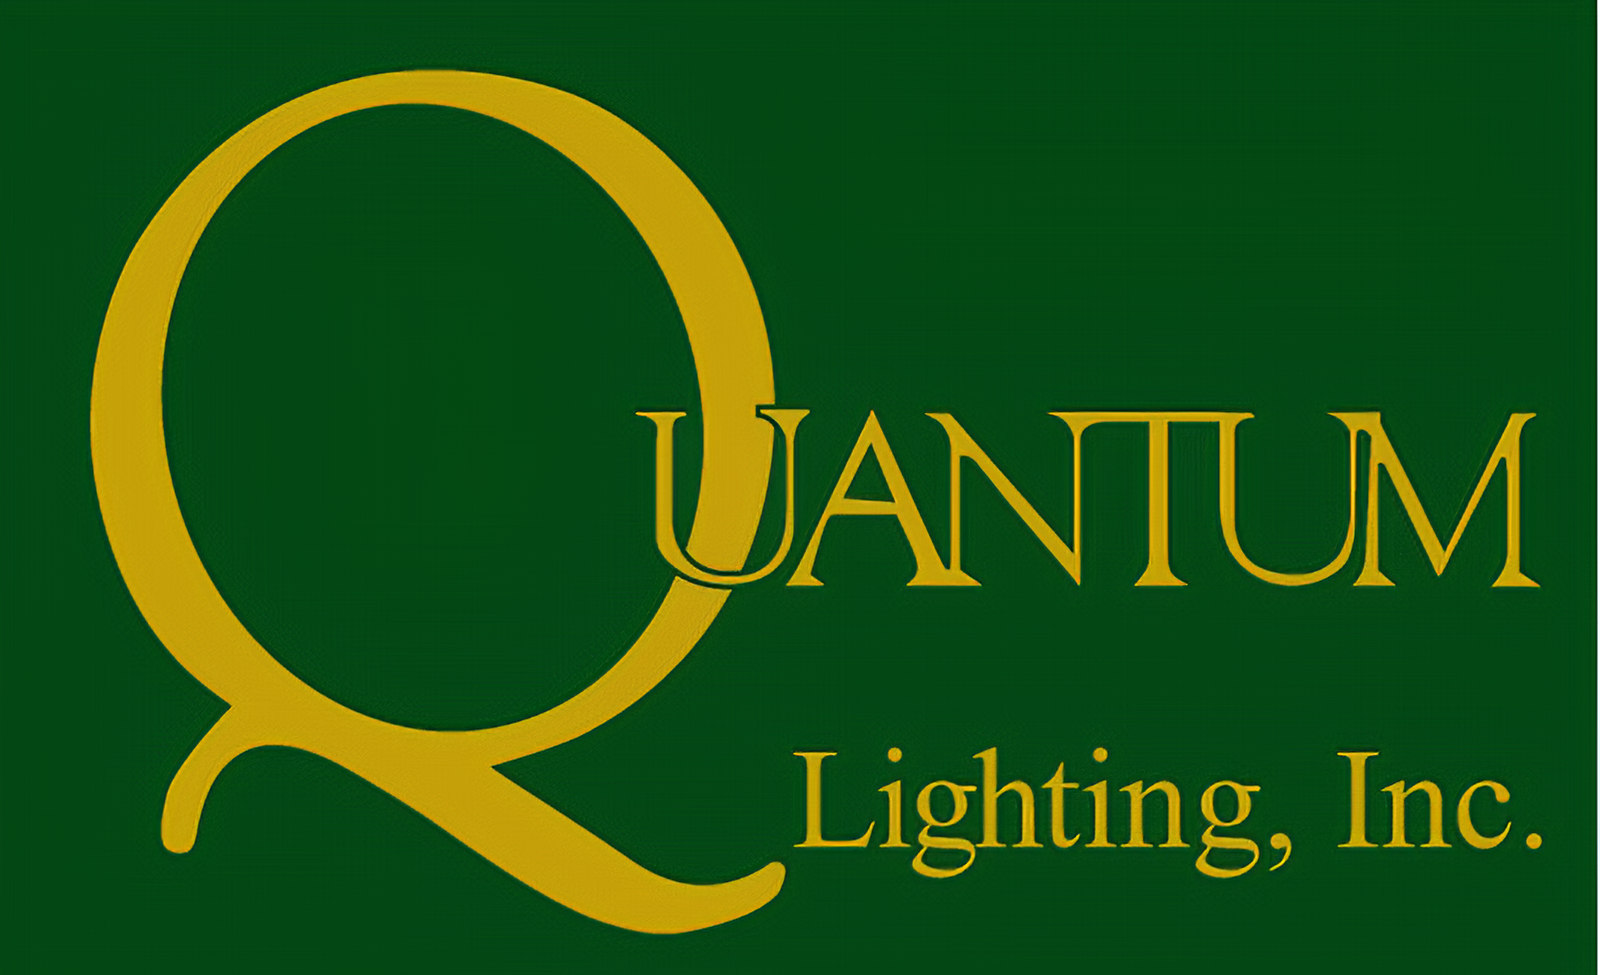 Quantum Lighting Inc.